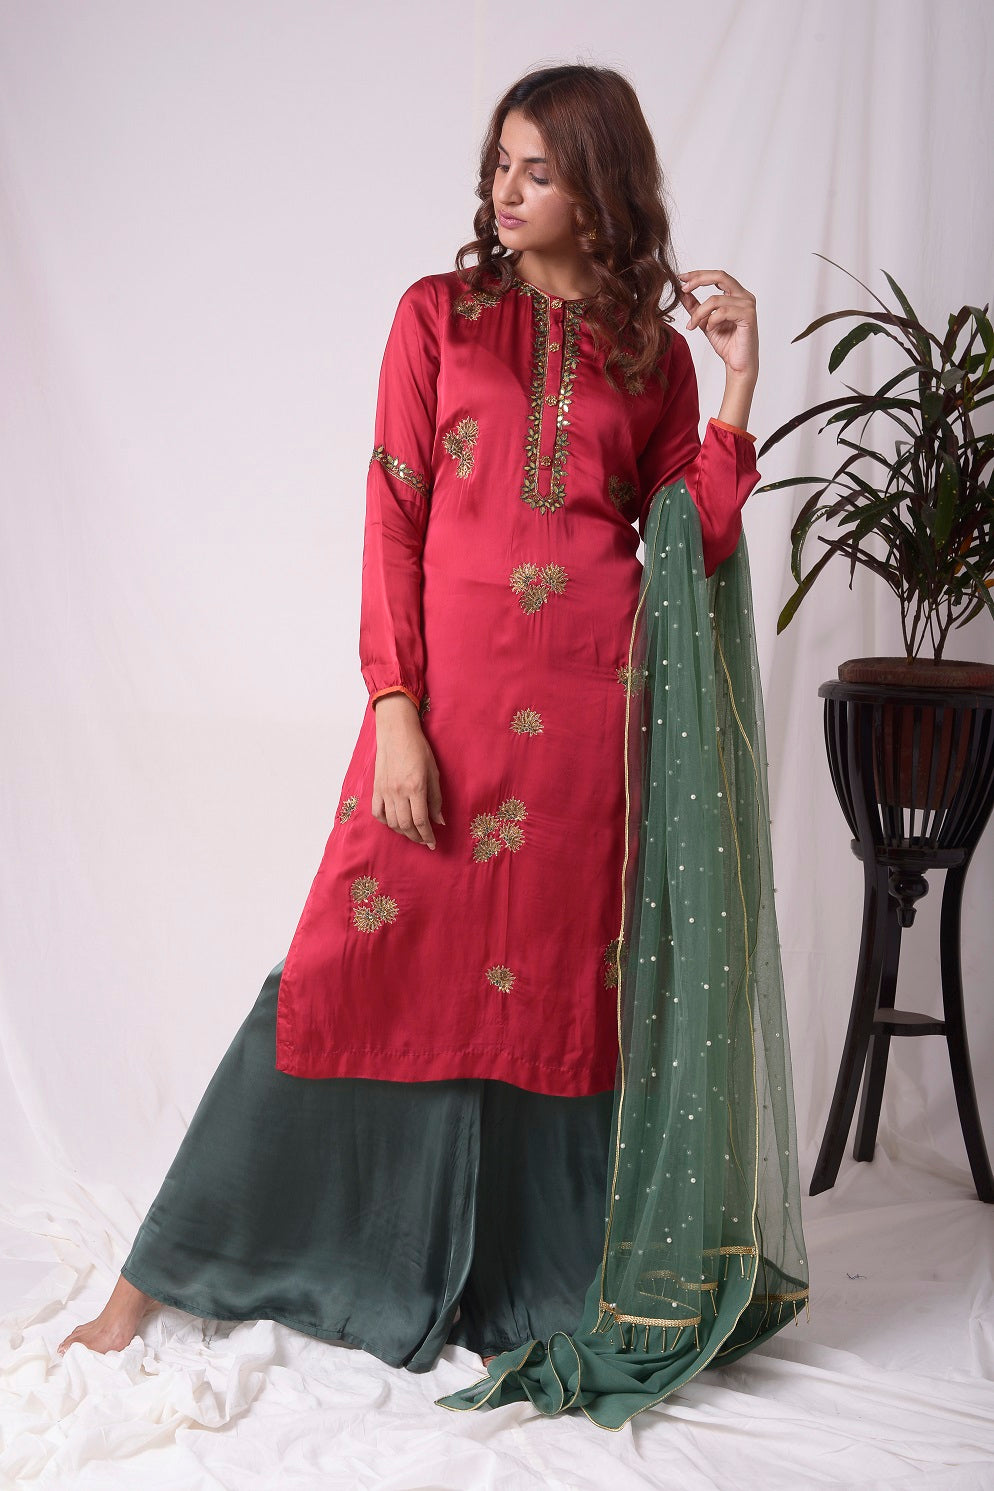 Buy red and green satin suit online in USA with palazzo and dupatta. Be the talk of parties and weddings with exquisite designer gowns, Indian suits, Anarkali dresses, Indowestern dresses from Pure Elegance Indian clothing store in USA.Shop online now.-full view-3